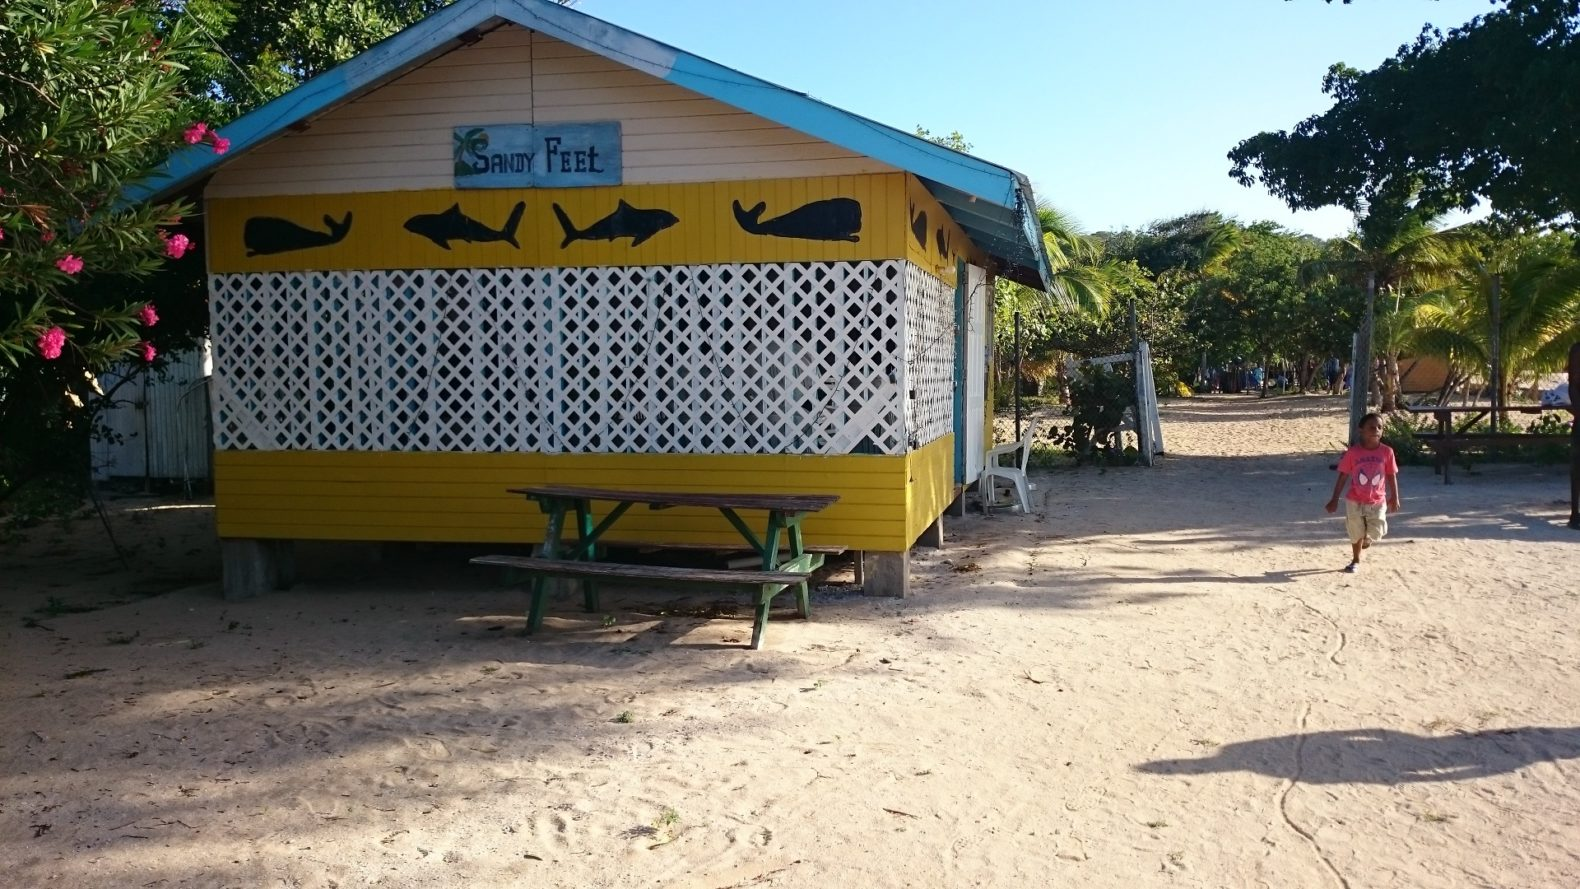 Sandy Feet Bar in Saline Bay, Mayreau